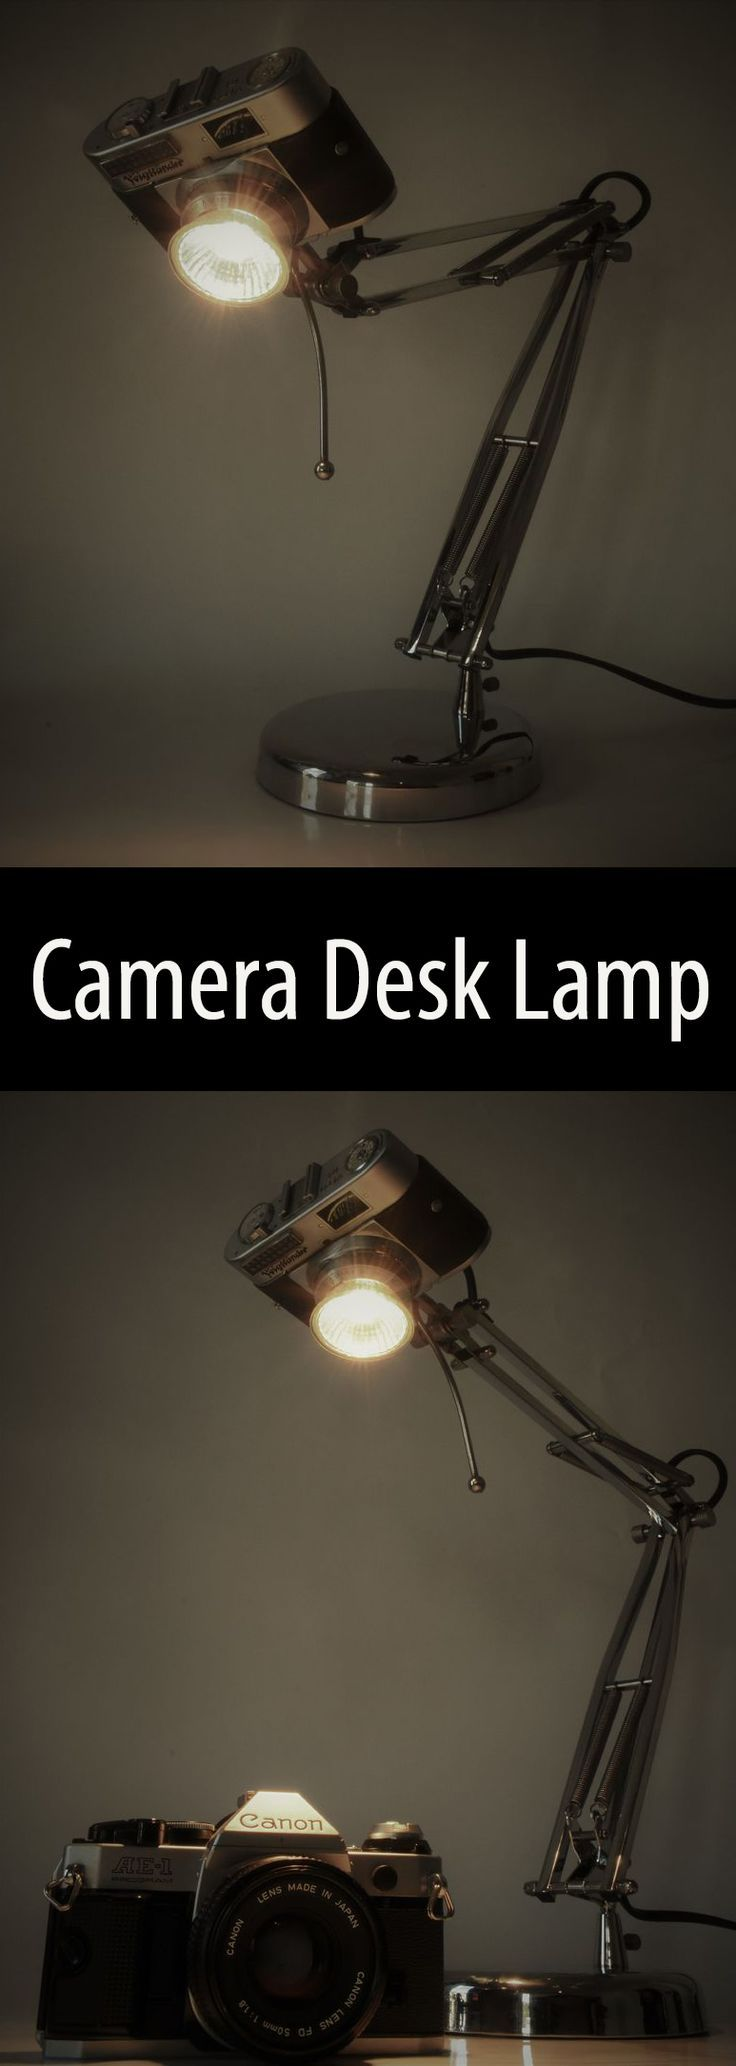 Camera Desk Lamp – MorningChores